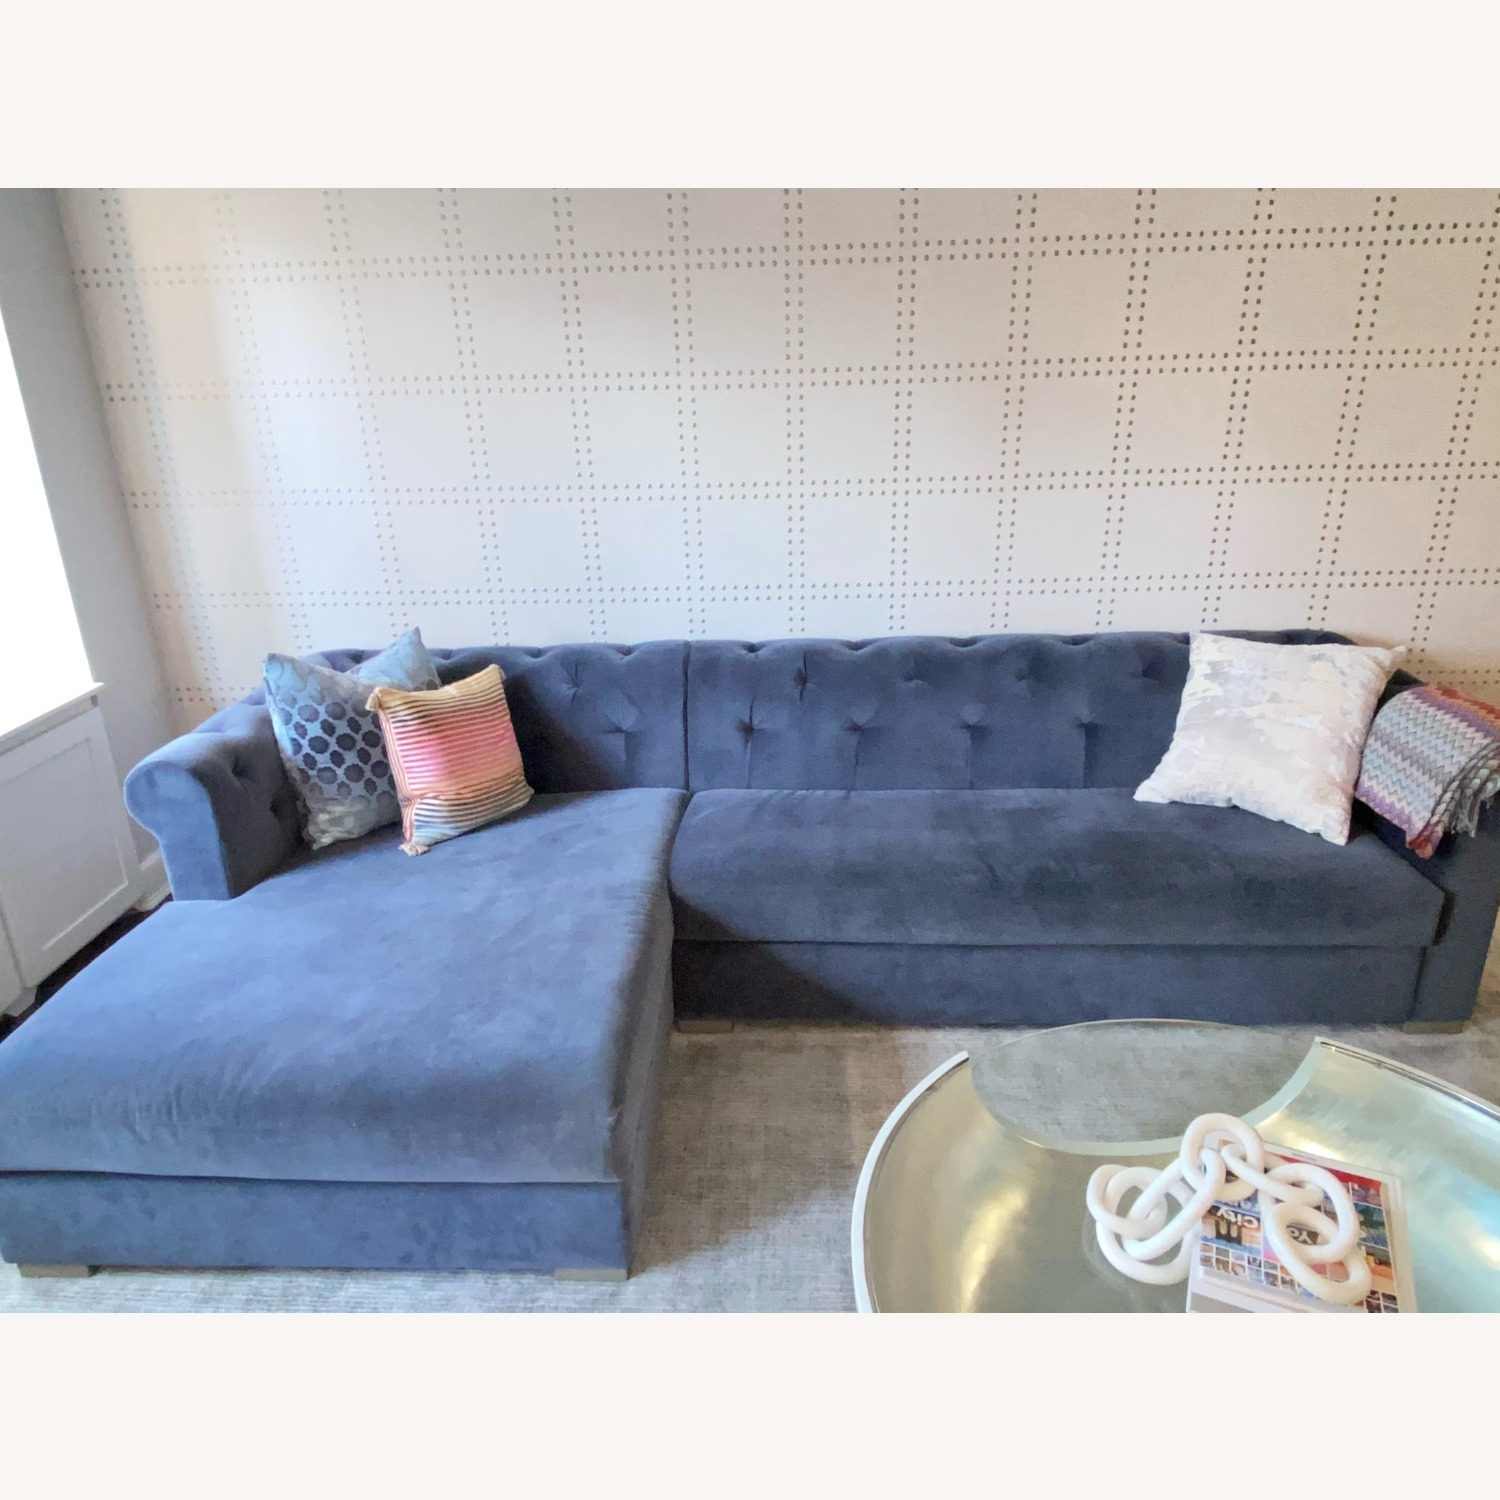 Restoration Hardware Sectional Couch - image-1